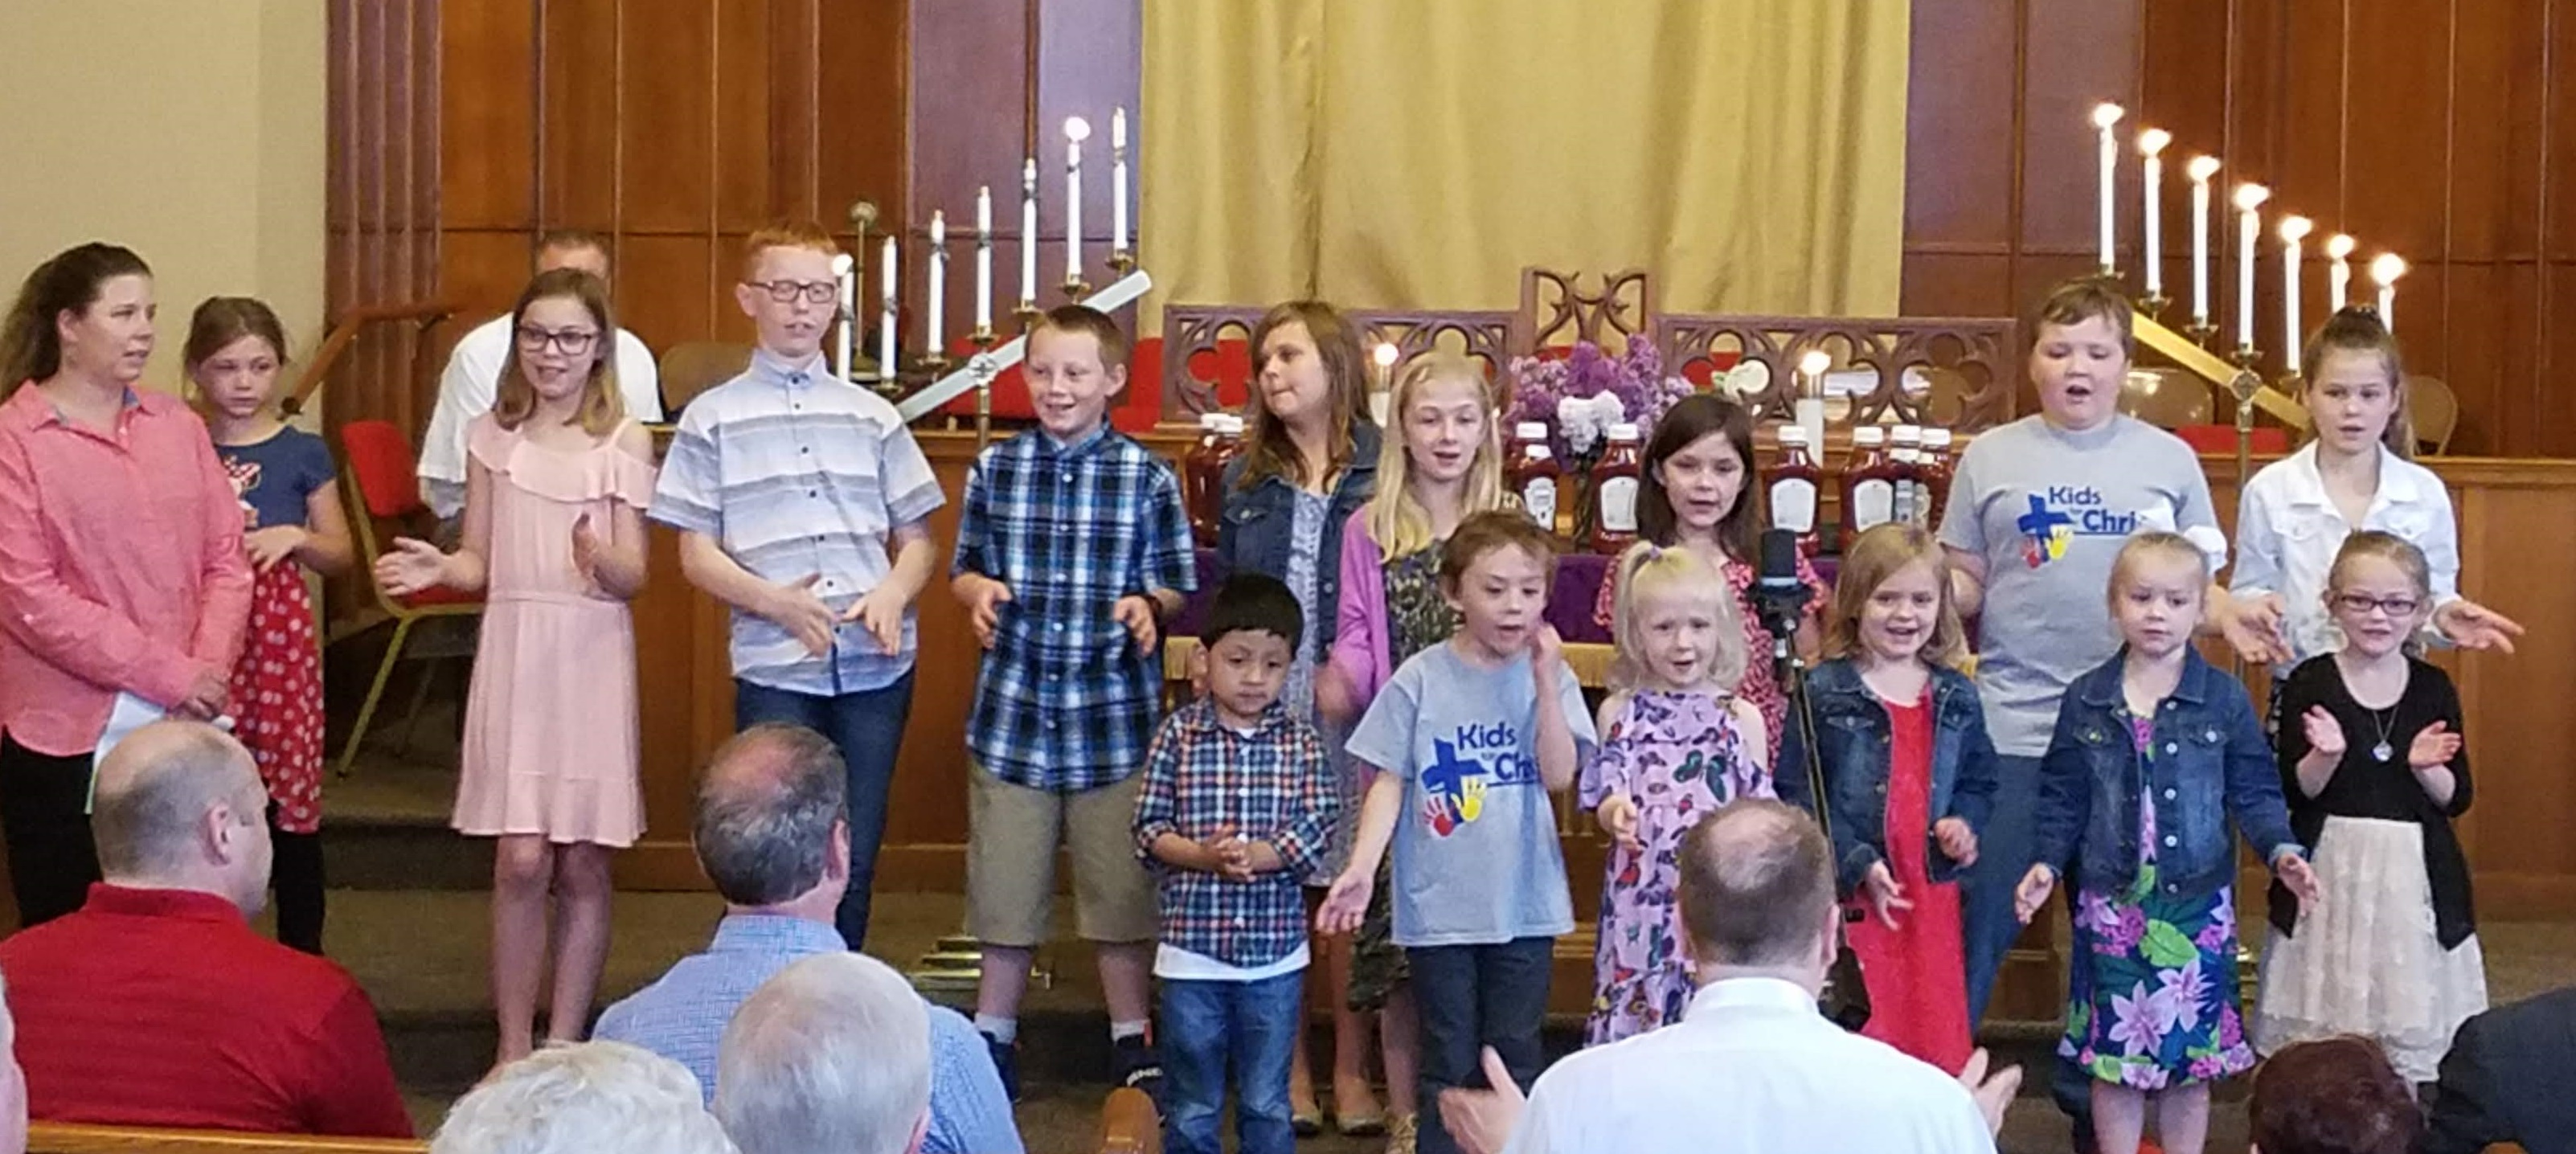 kids singing may 2019